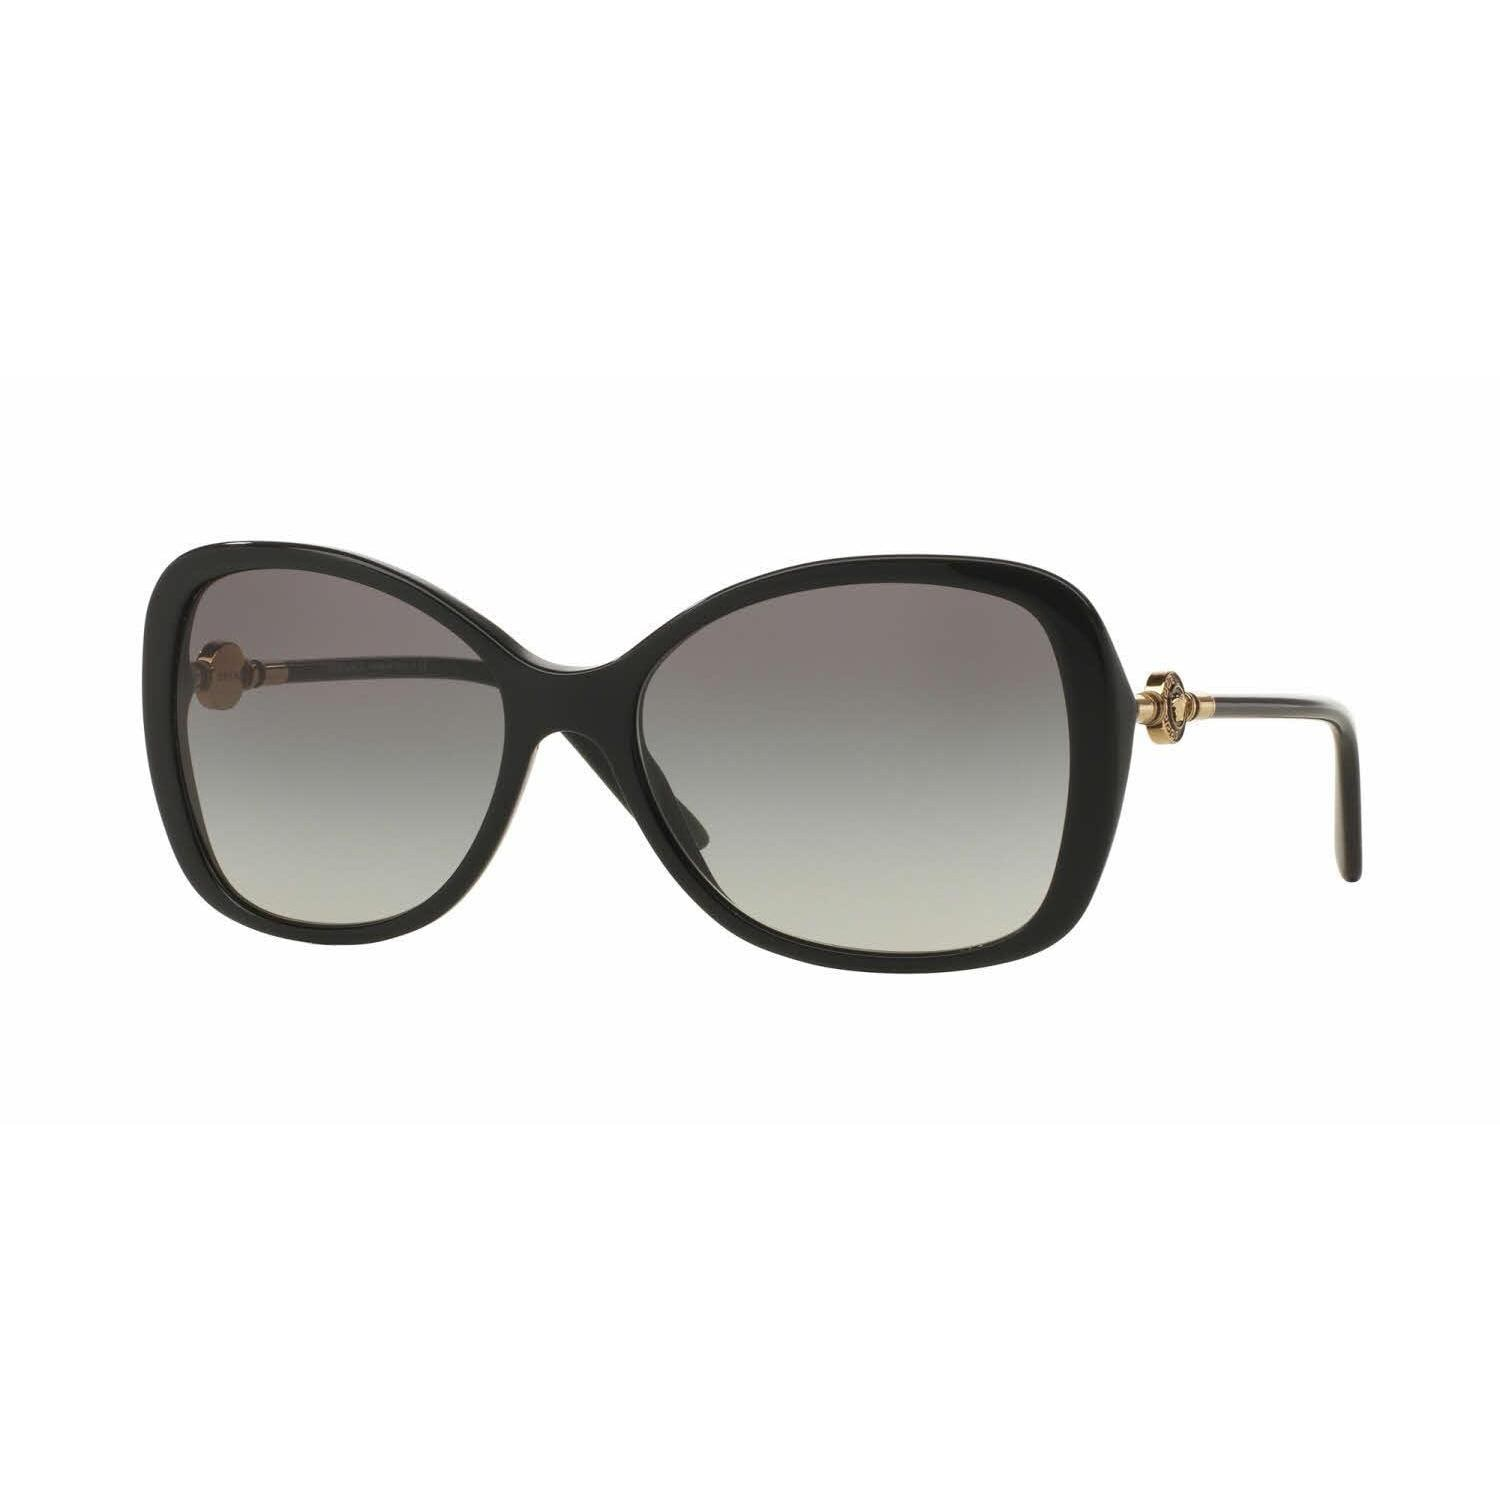 4e7a34169f735 Shop Versace Women VE4303 GB1 11 Black Metal Rectangle Sunglasses - Free  Shipping Today - Overstock - 13319437